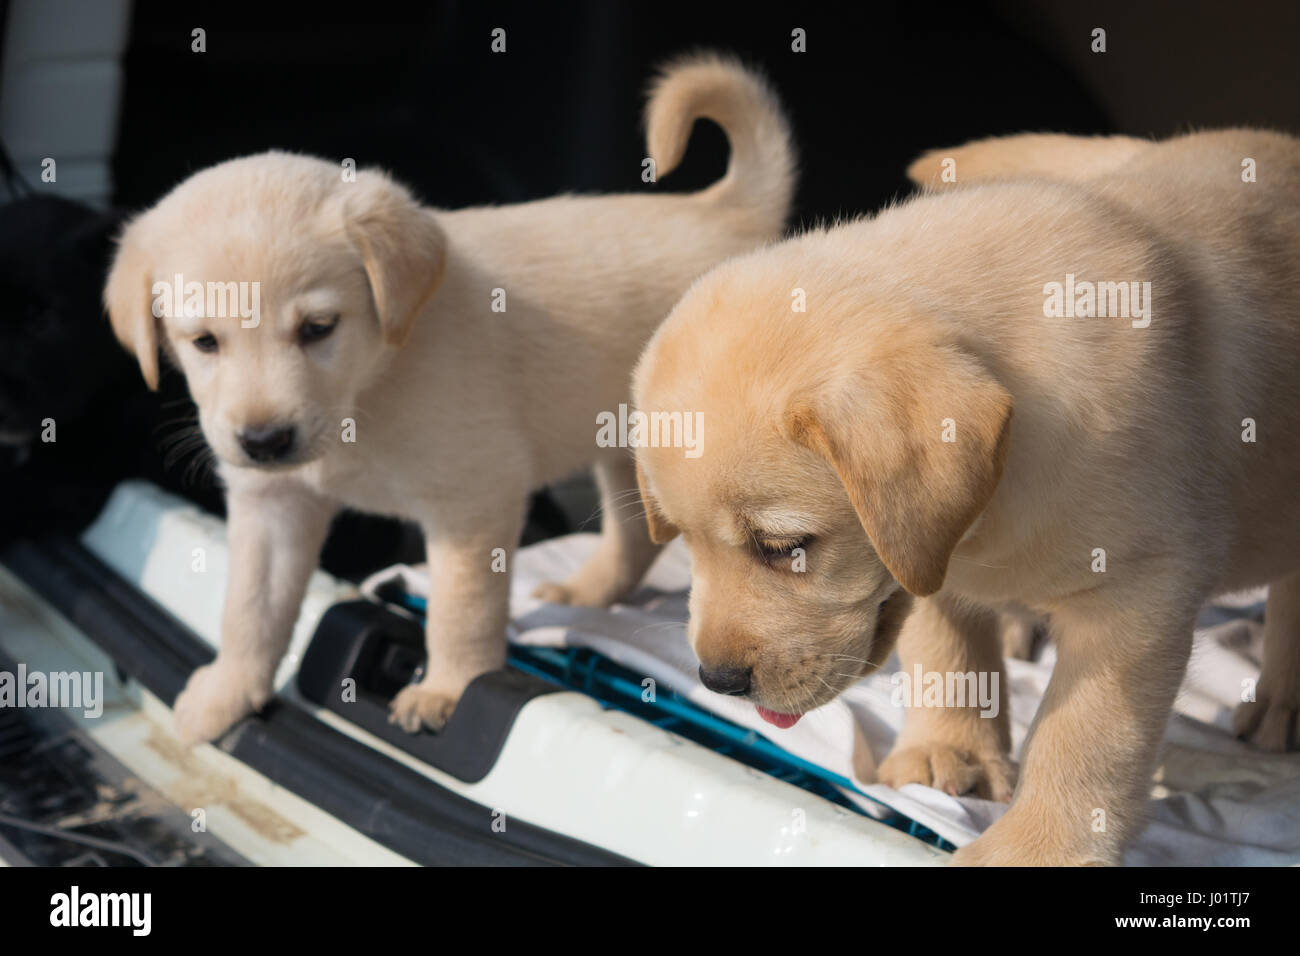 Cute Baby Labrador High Resolution Stock Photography And Images Alamy